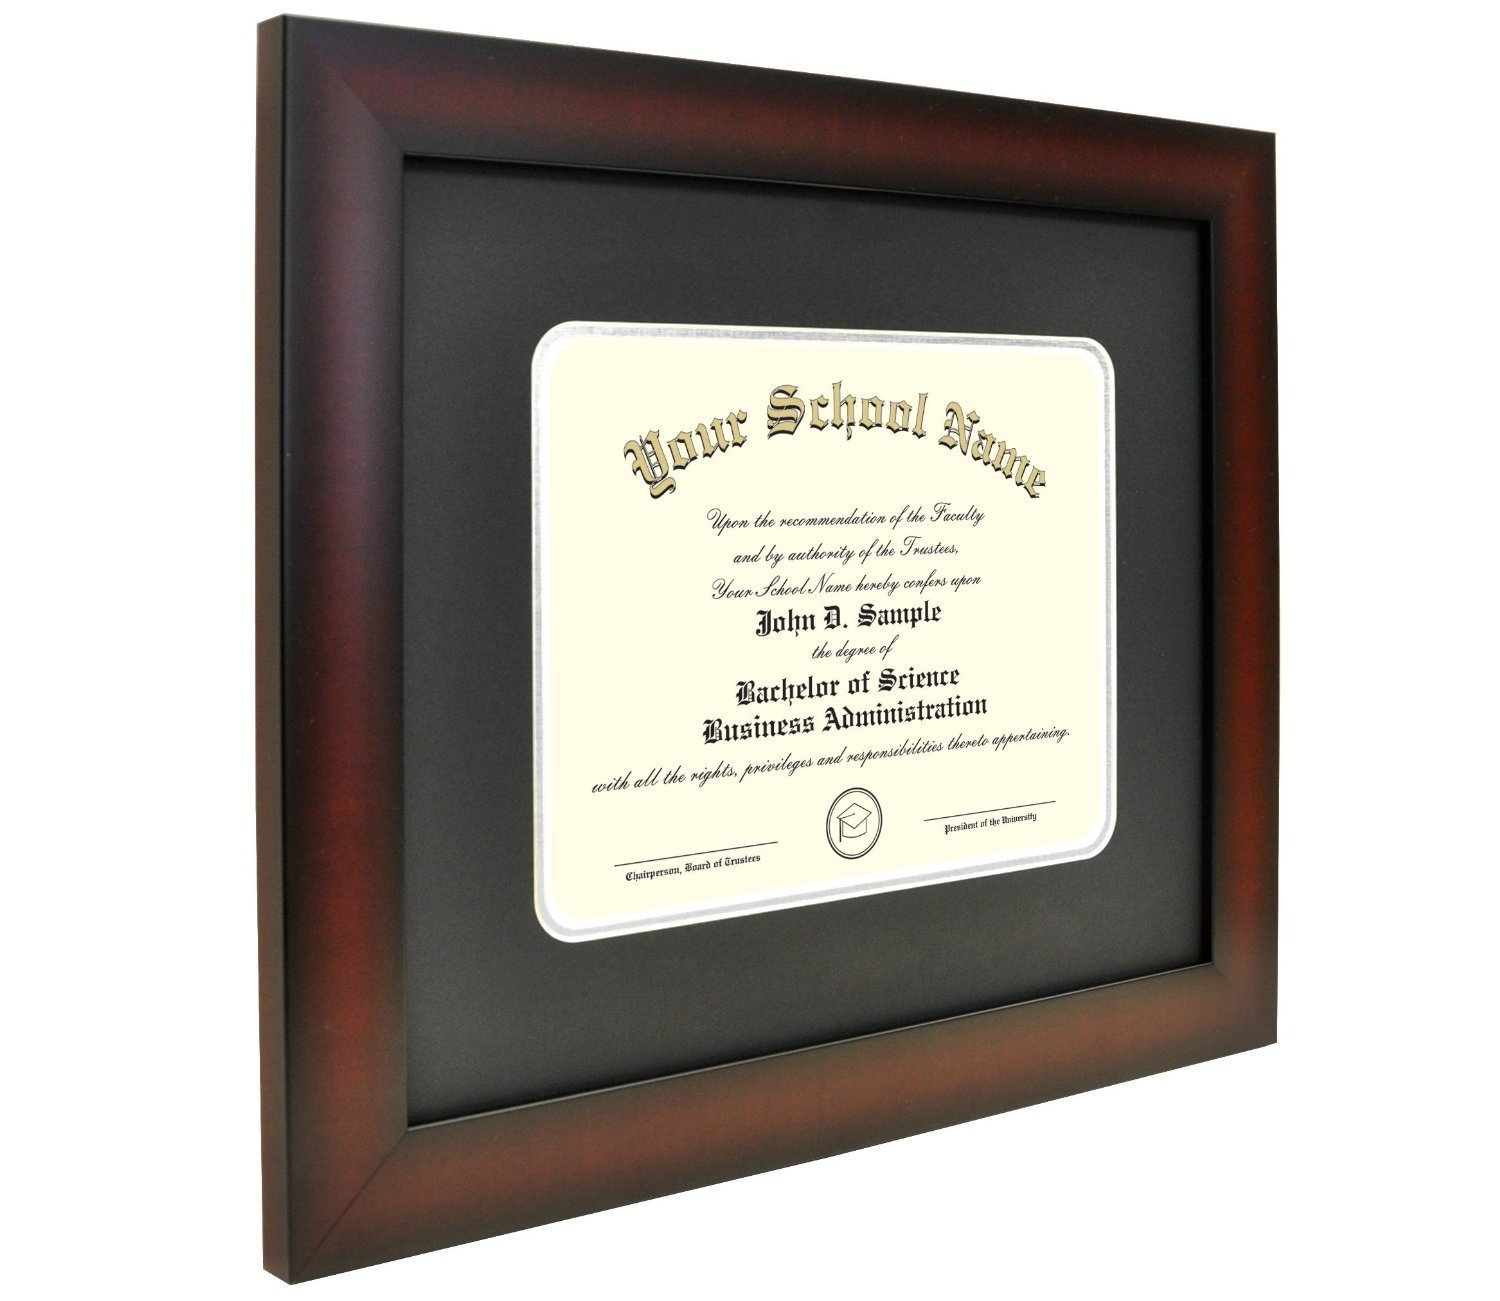 Celebration Frames Mahogany Finish Infinity Diploma Frame (fits 11 x 14 Document) with Black and Silver Mats